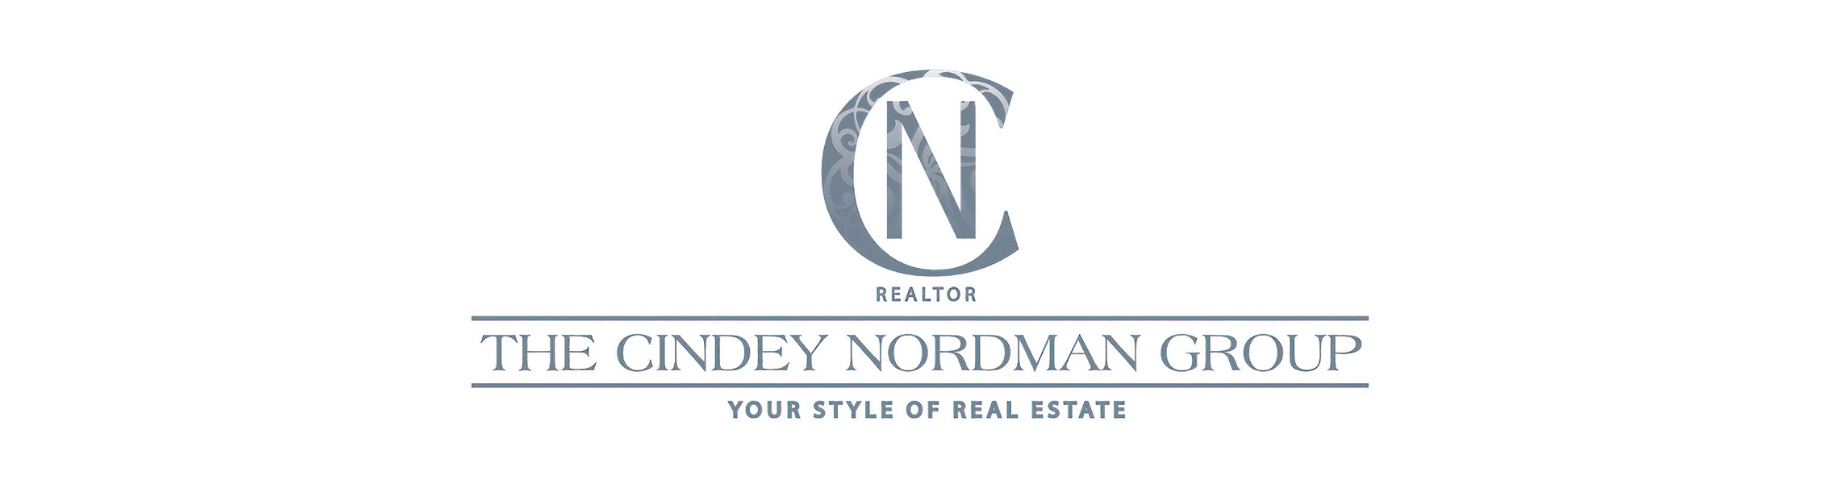 The Cindy Norman Group – Your Style of Real Estate